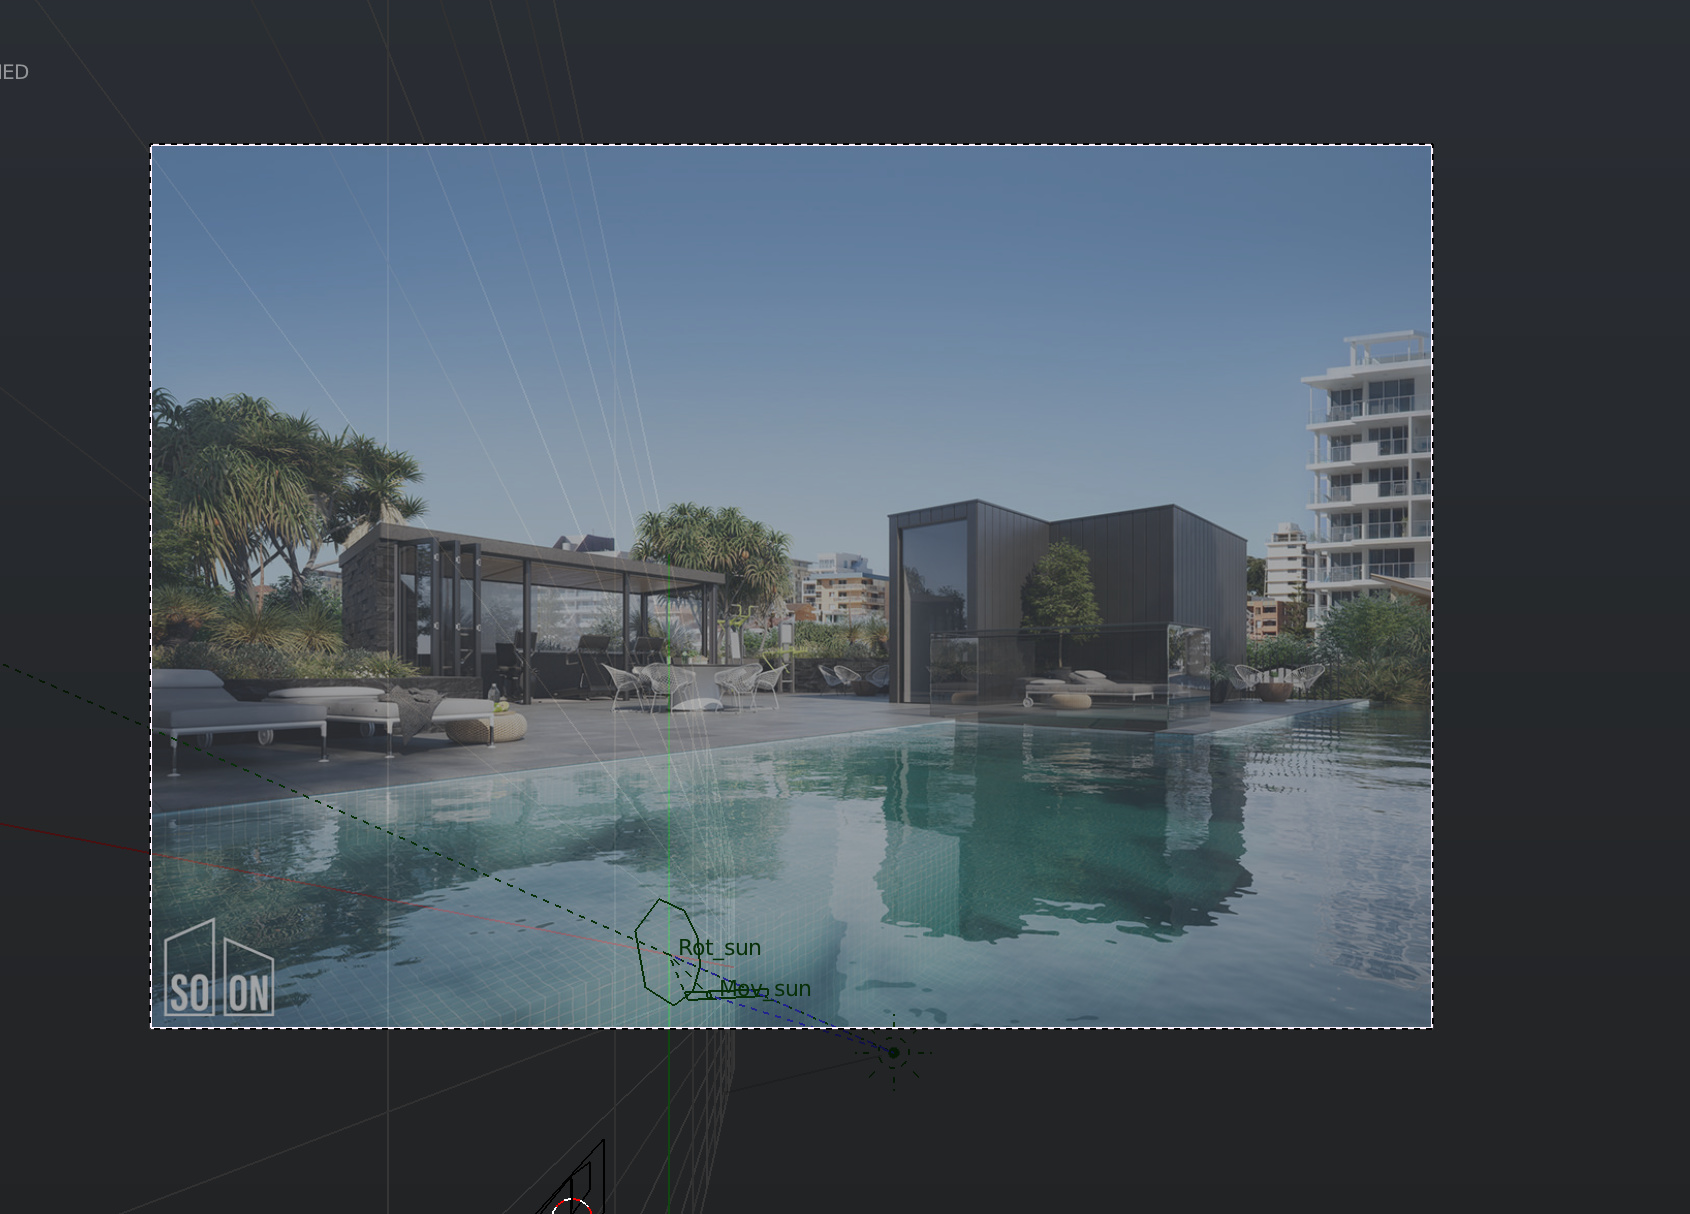 Camera Calibration using Perspective Views of Rectangles - Released